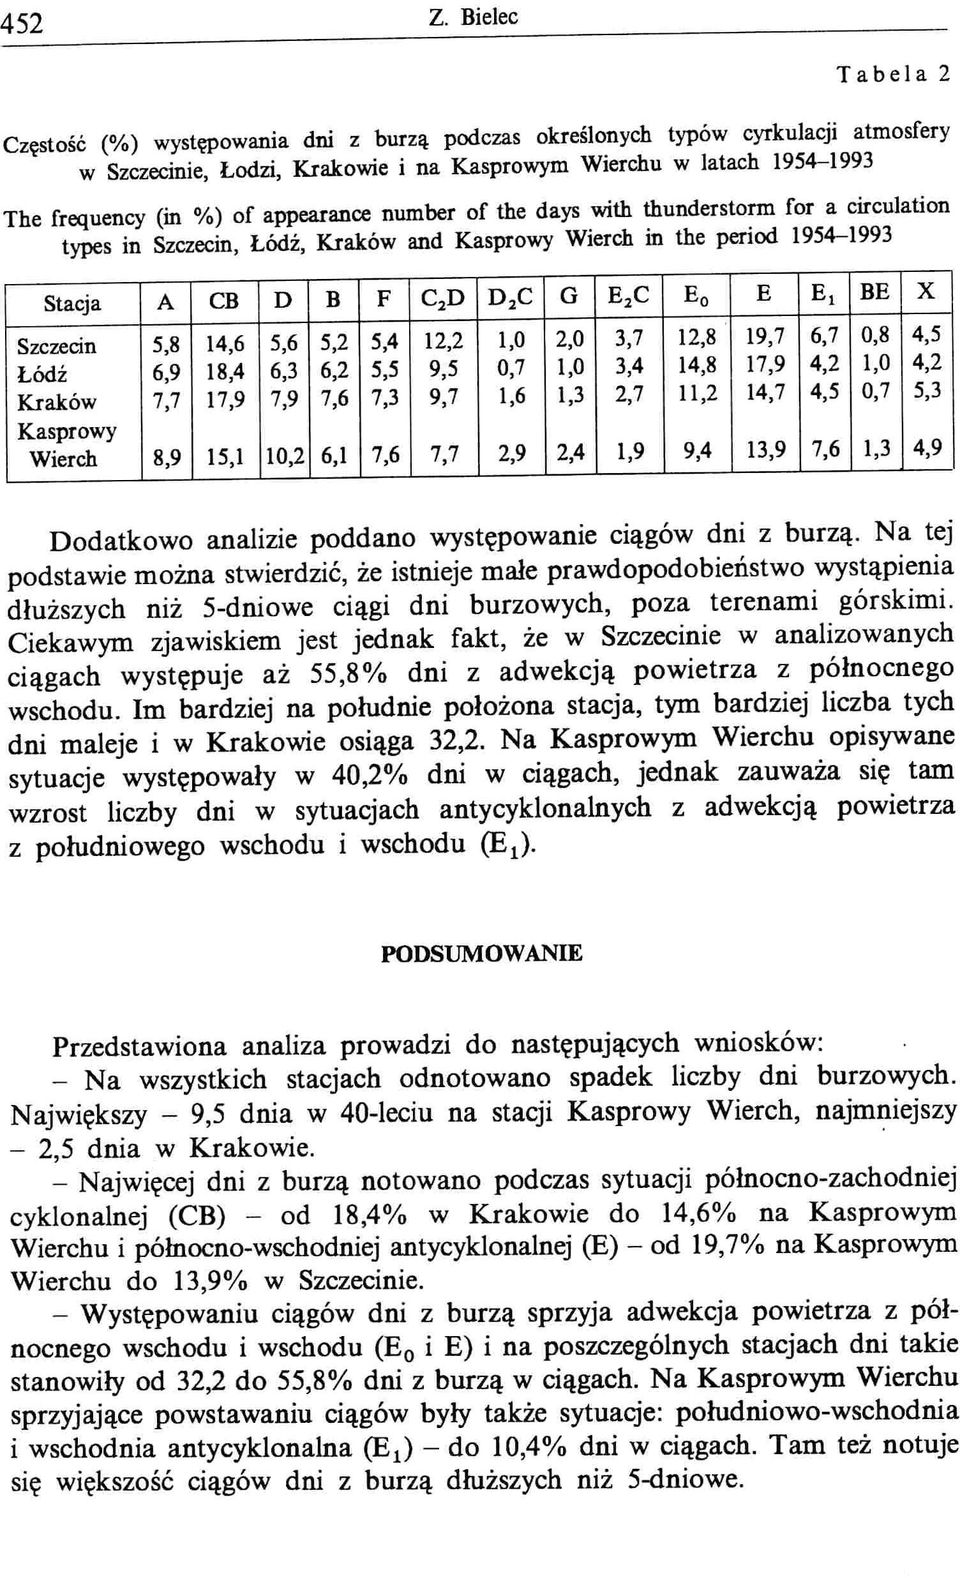 appearance number of the days with thunderstorm for a circulation types in Szczecin, Łódź, Kraków and Kasprowy Wierch in the period 1954-1993 Stacja A CB D B F C 2 D D 2 C G E 2 C Eo E El BE X